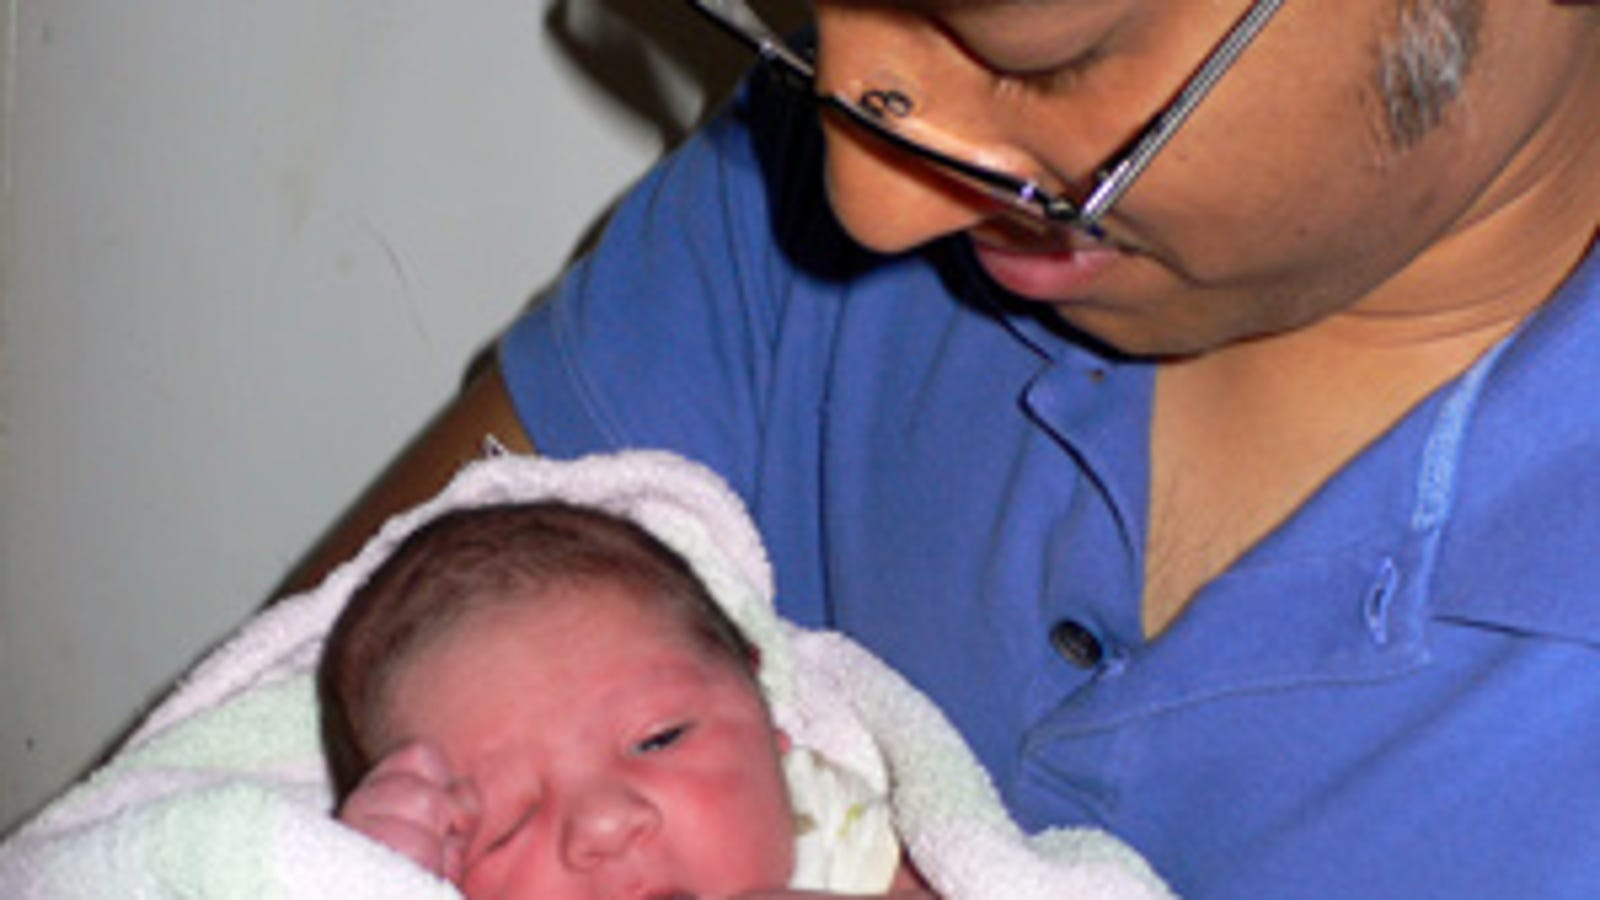 Its Genome Was Sequenced Last Year But >> This Baby May Be The First To Be Born With Its Genome Fully Sequenced